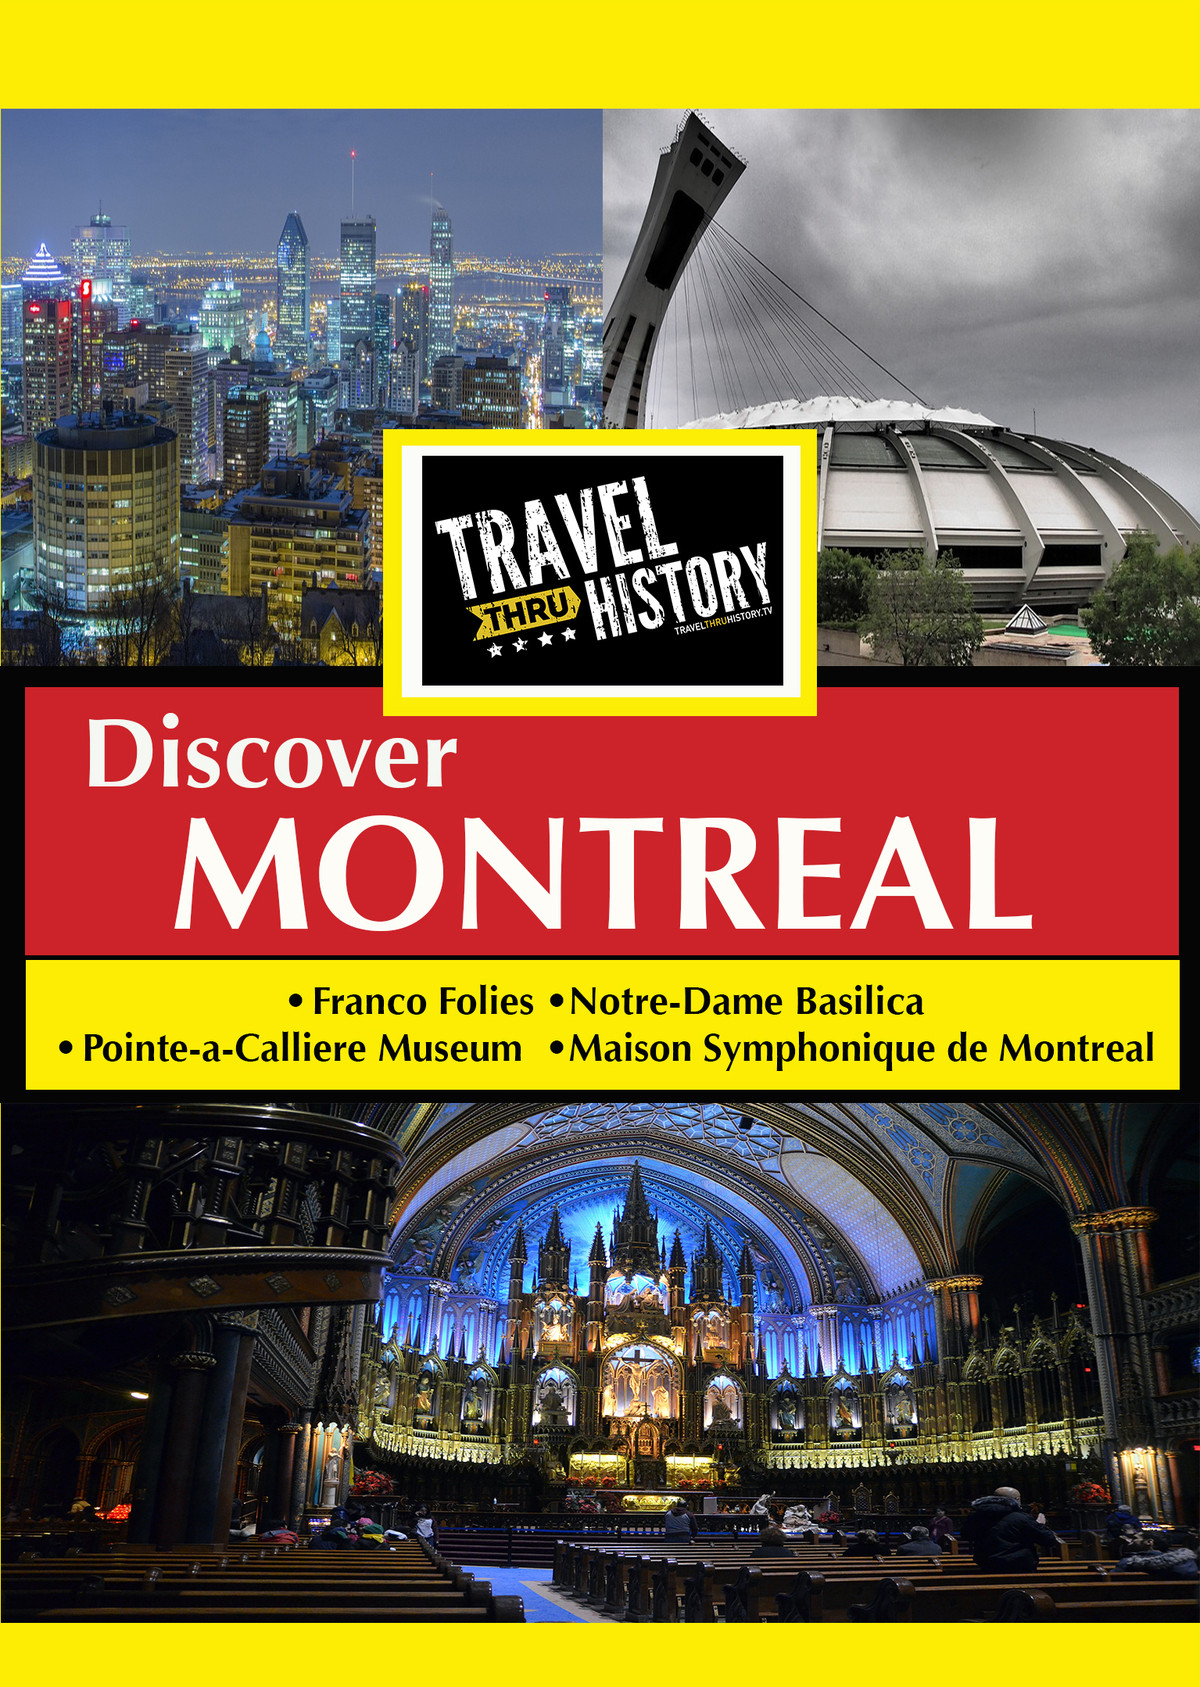 T8981 - Discover Montreal